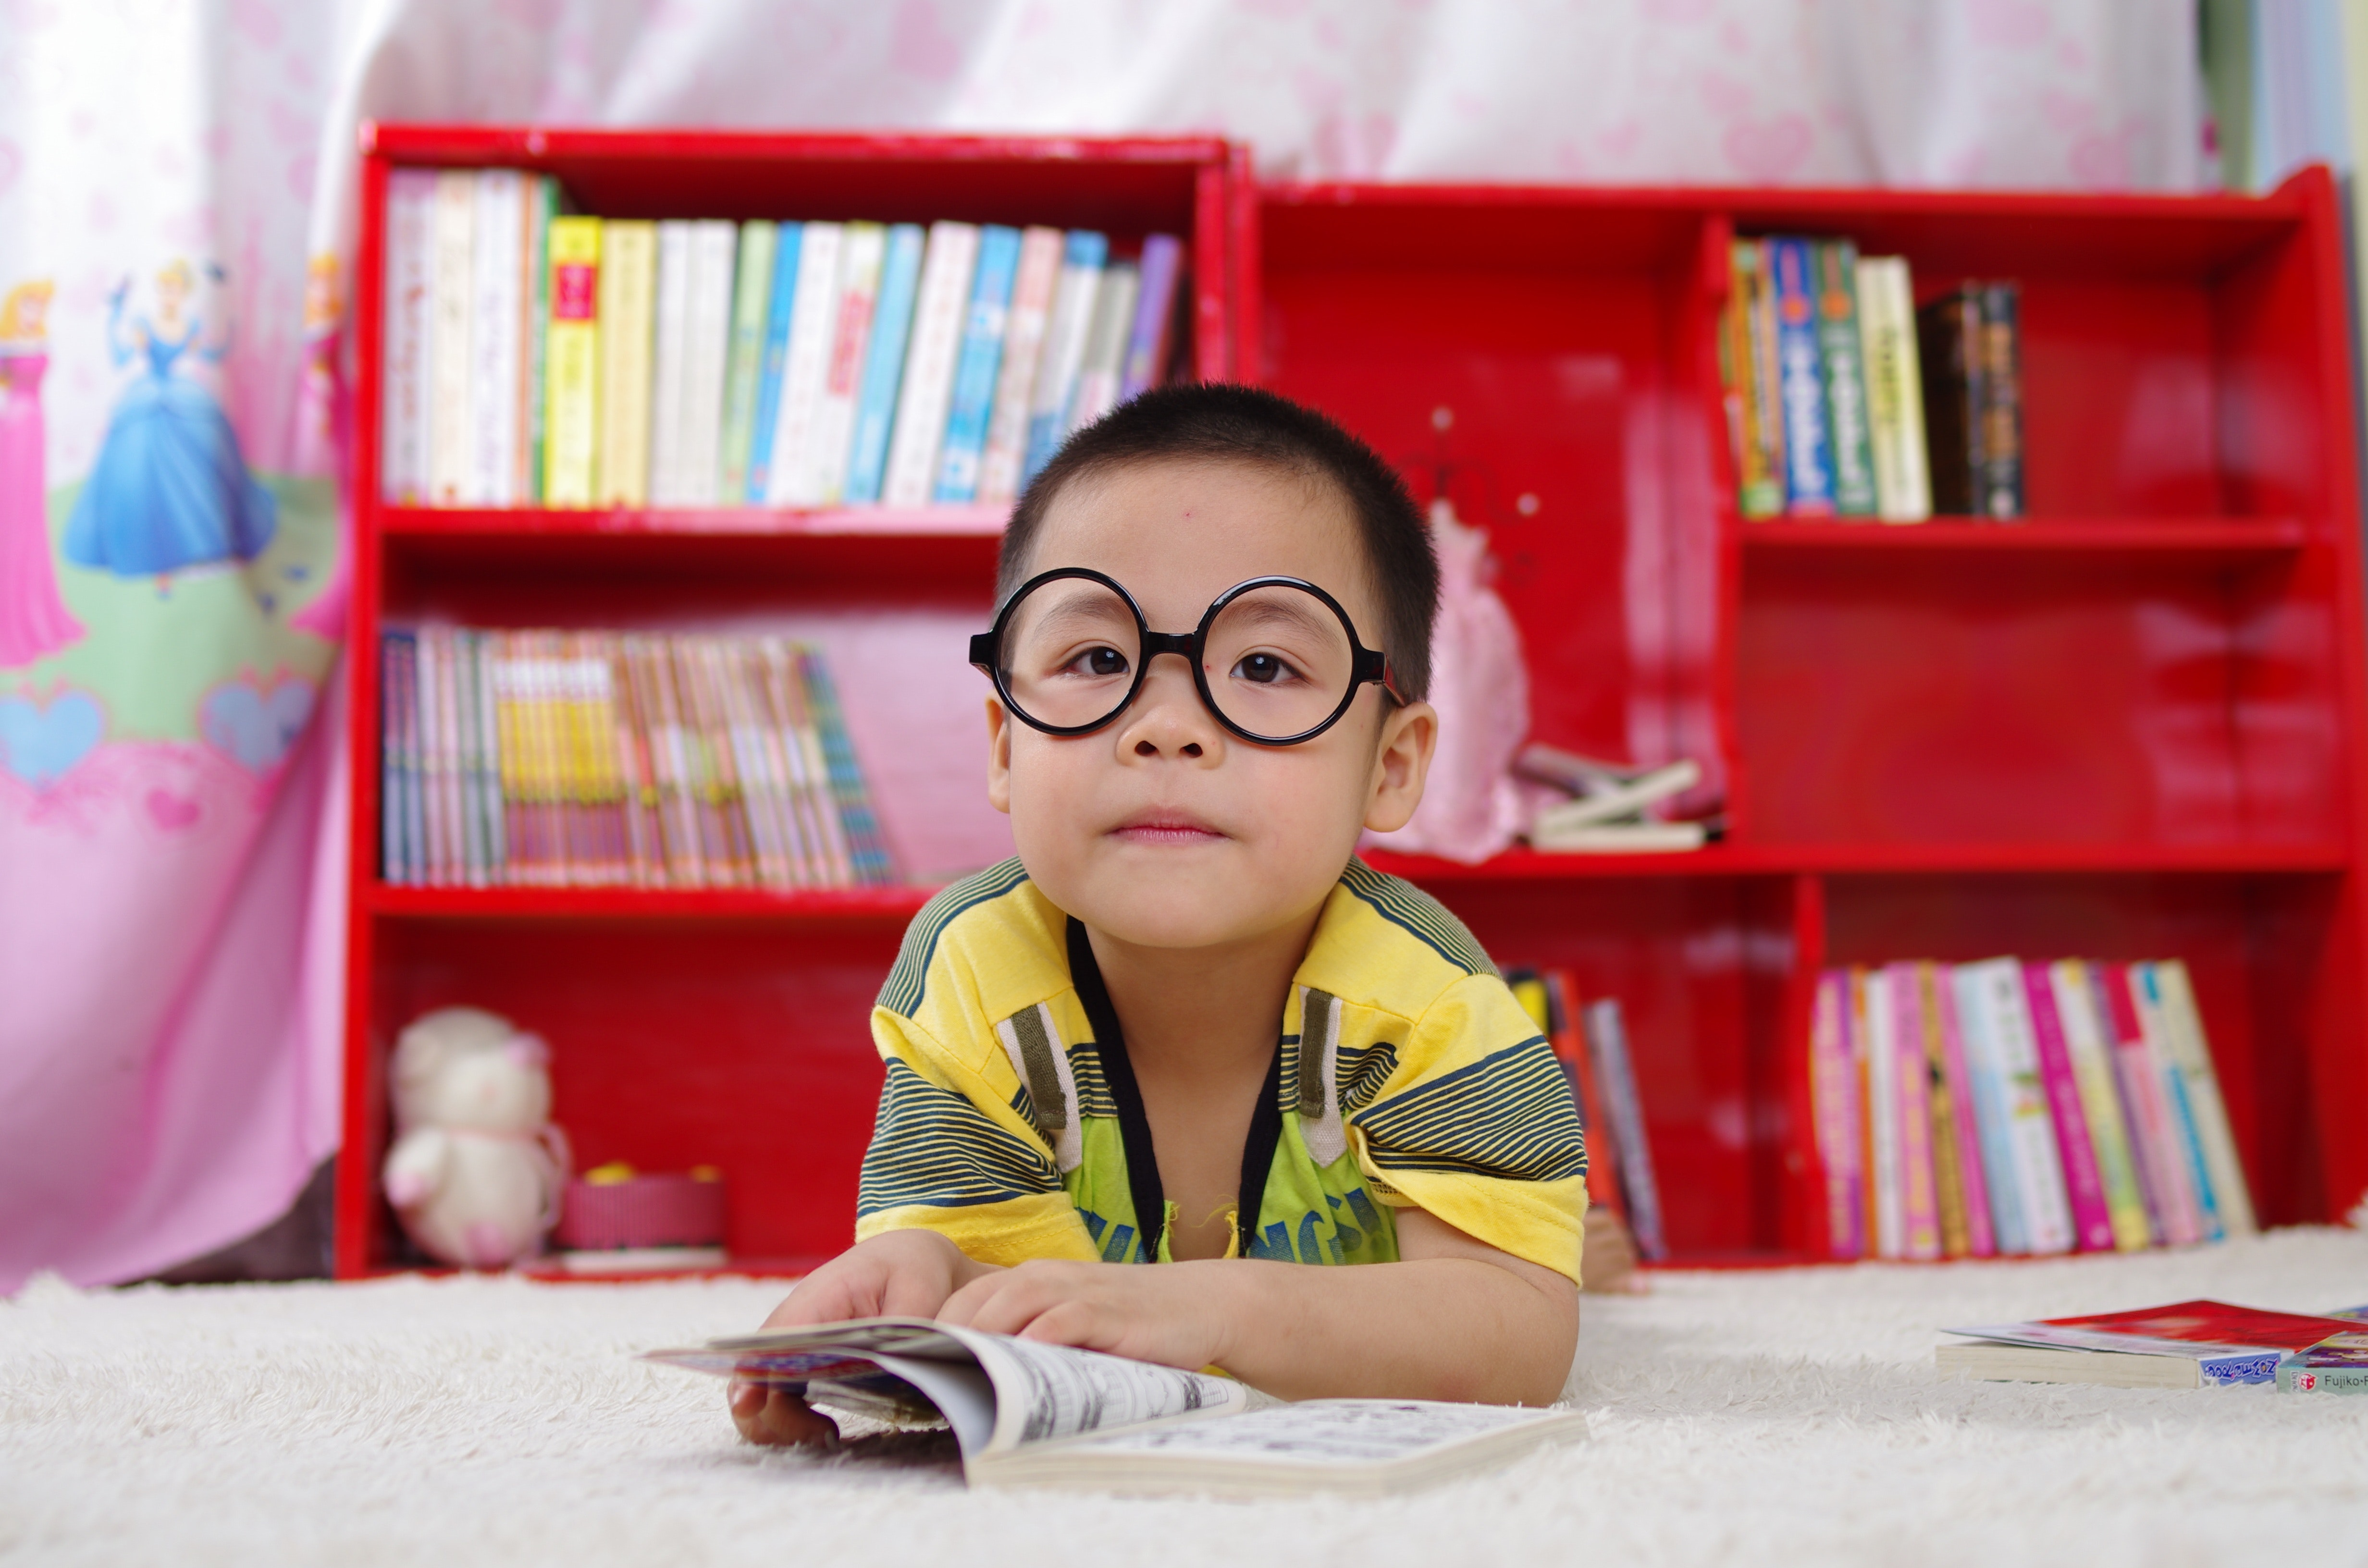 Child reading a book in front of a bookcase.